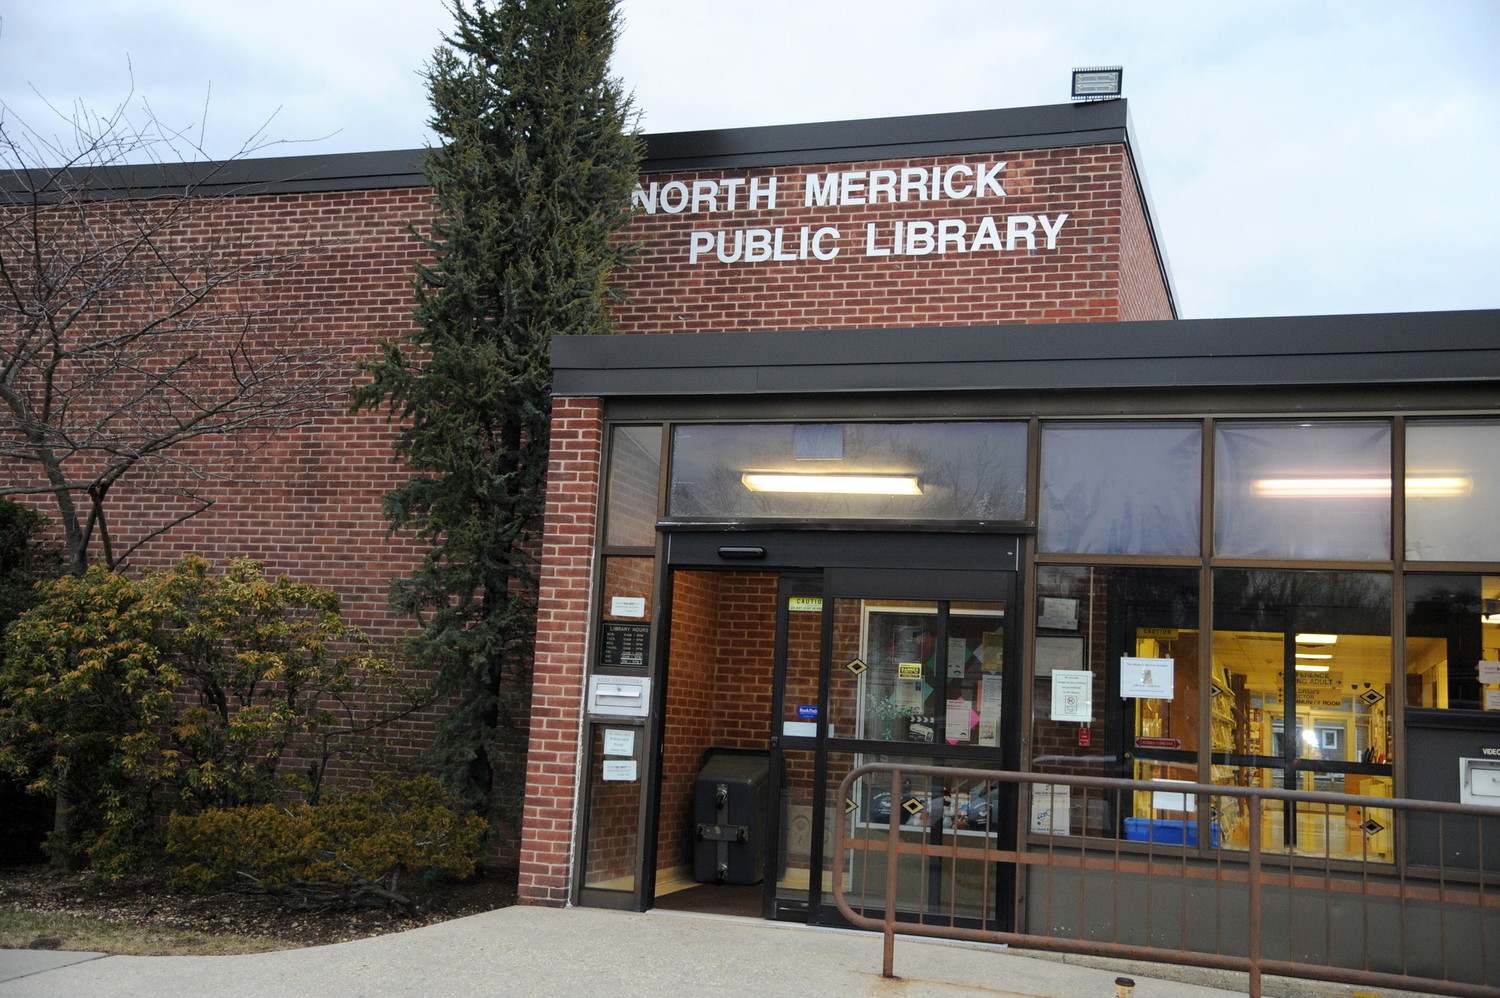 The North Merrick Public Library